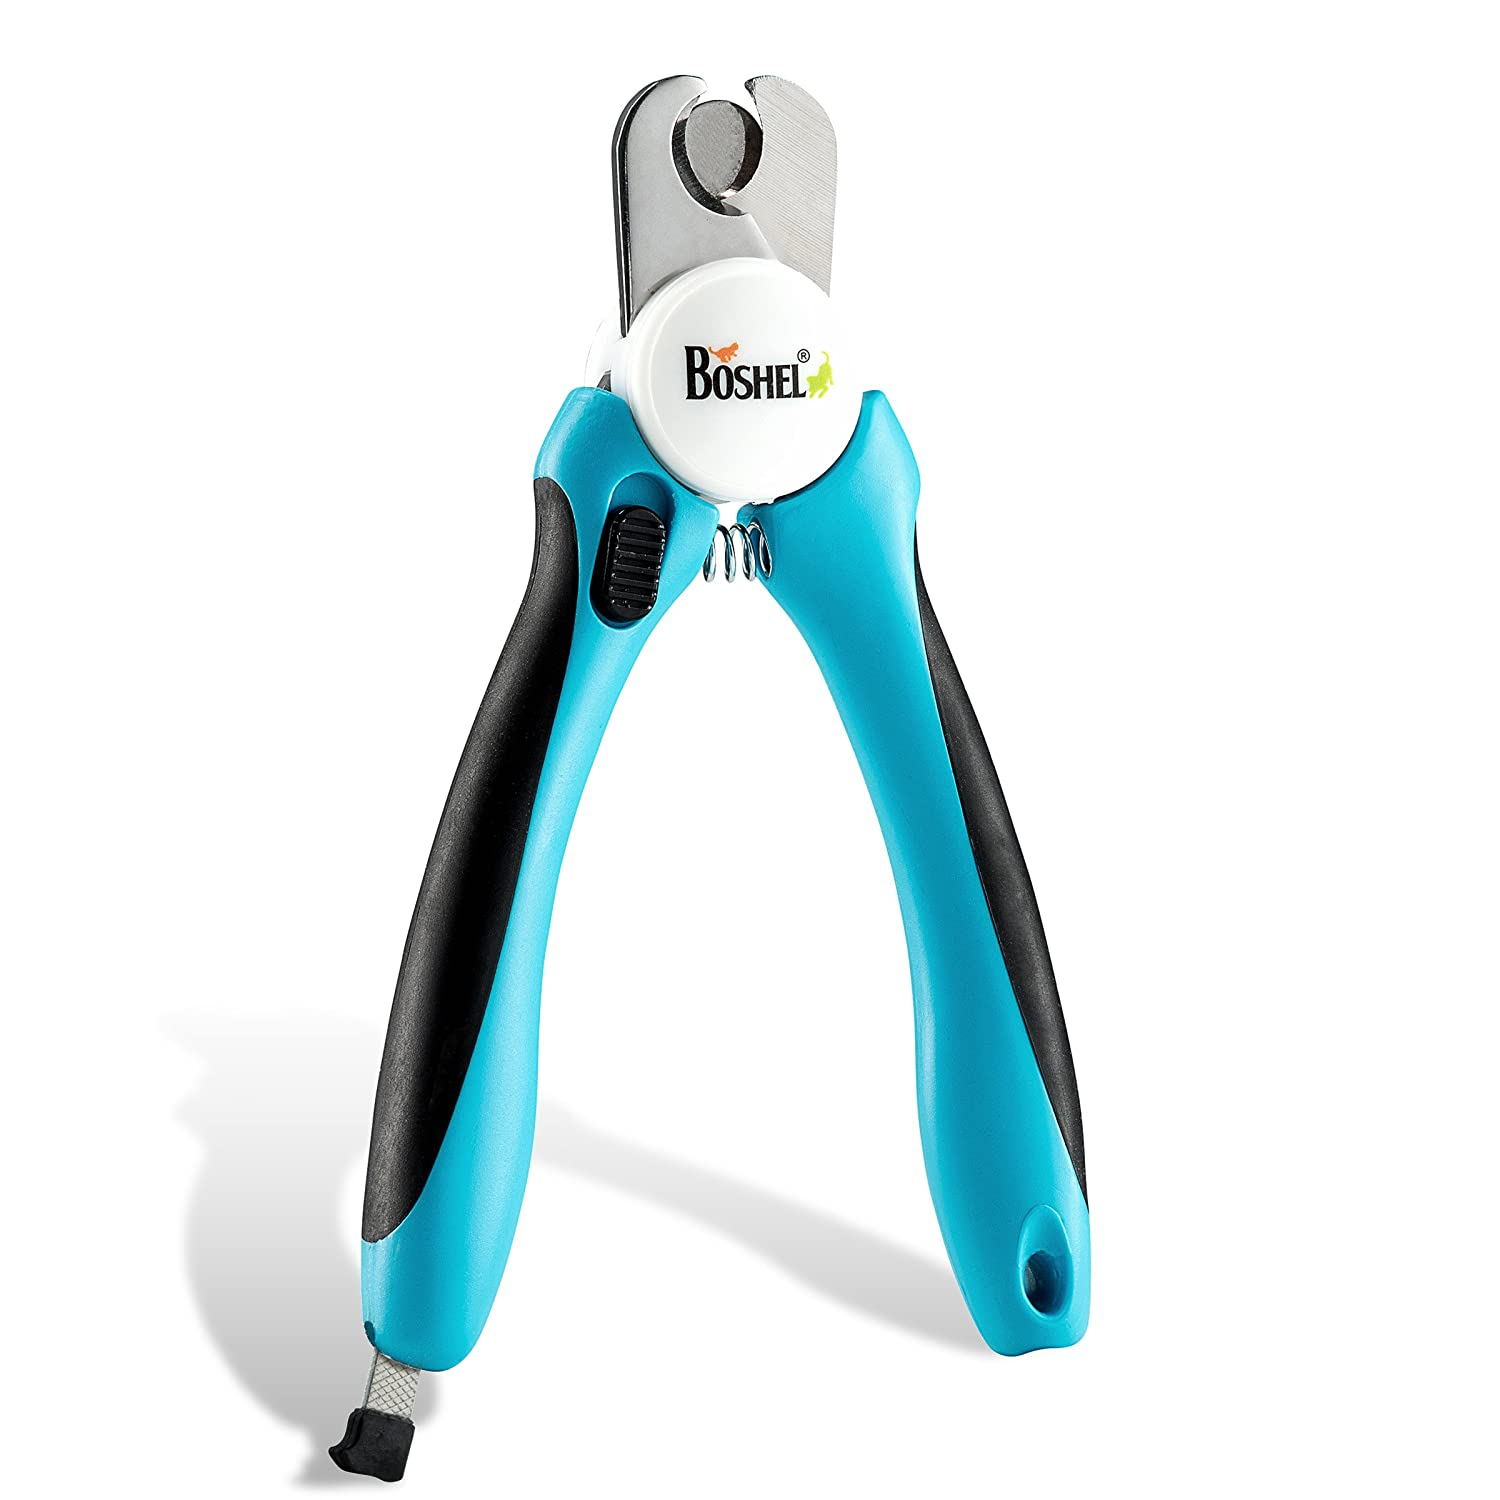 Amazon Dog Nail Clippers and Trimmer By Boshel With Safety